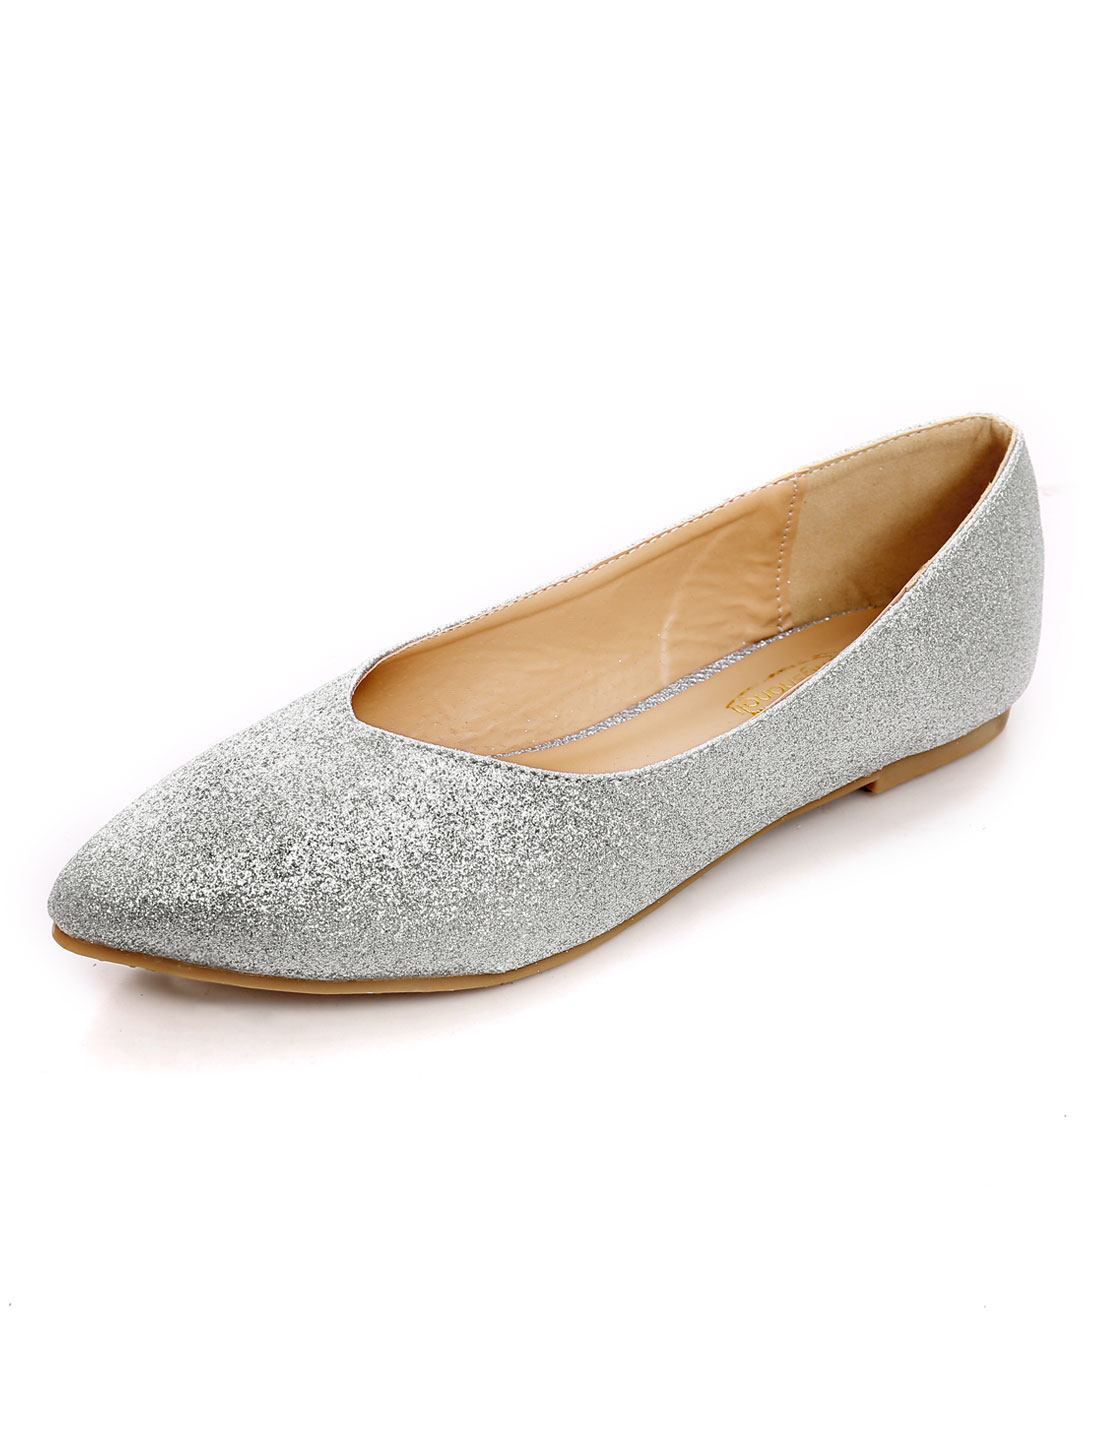 Lady Shiny Decor Pointed Toe Casual Flats Silver Tone US 8.5